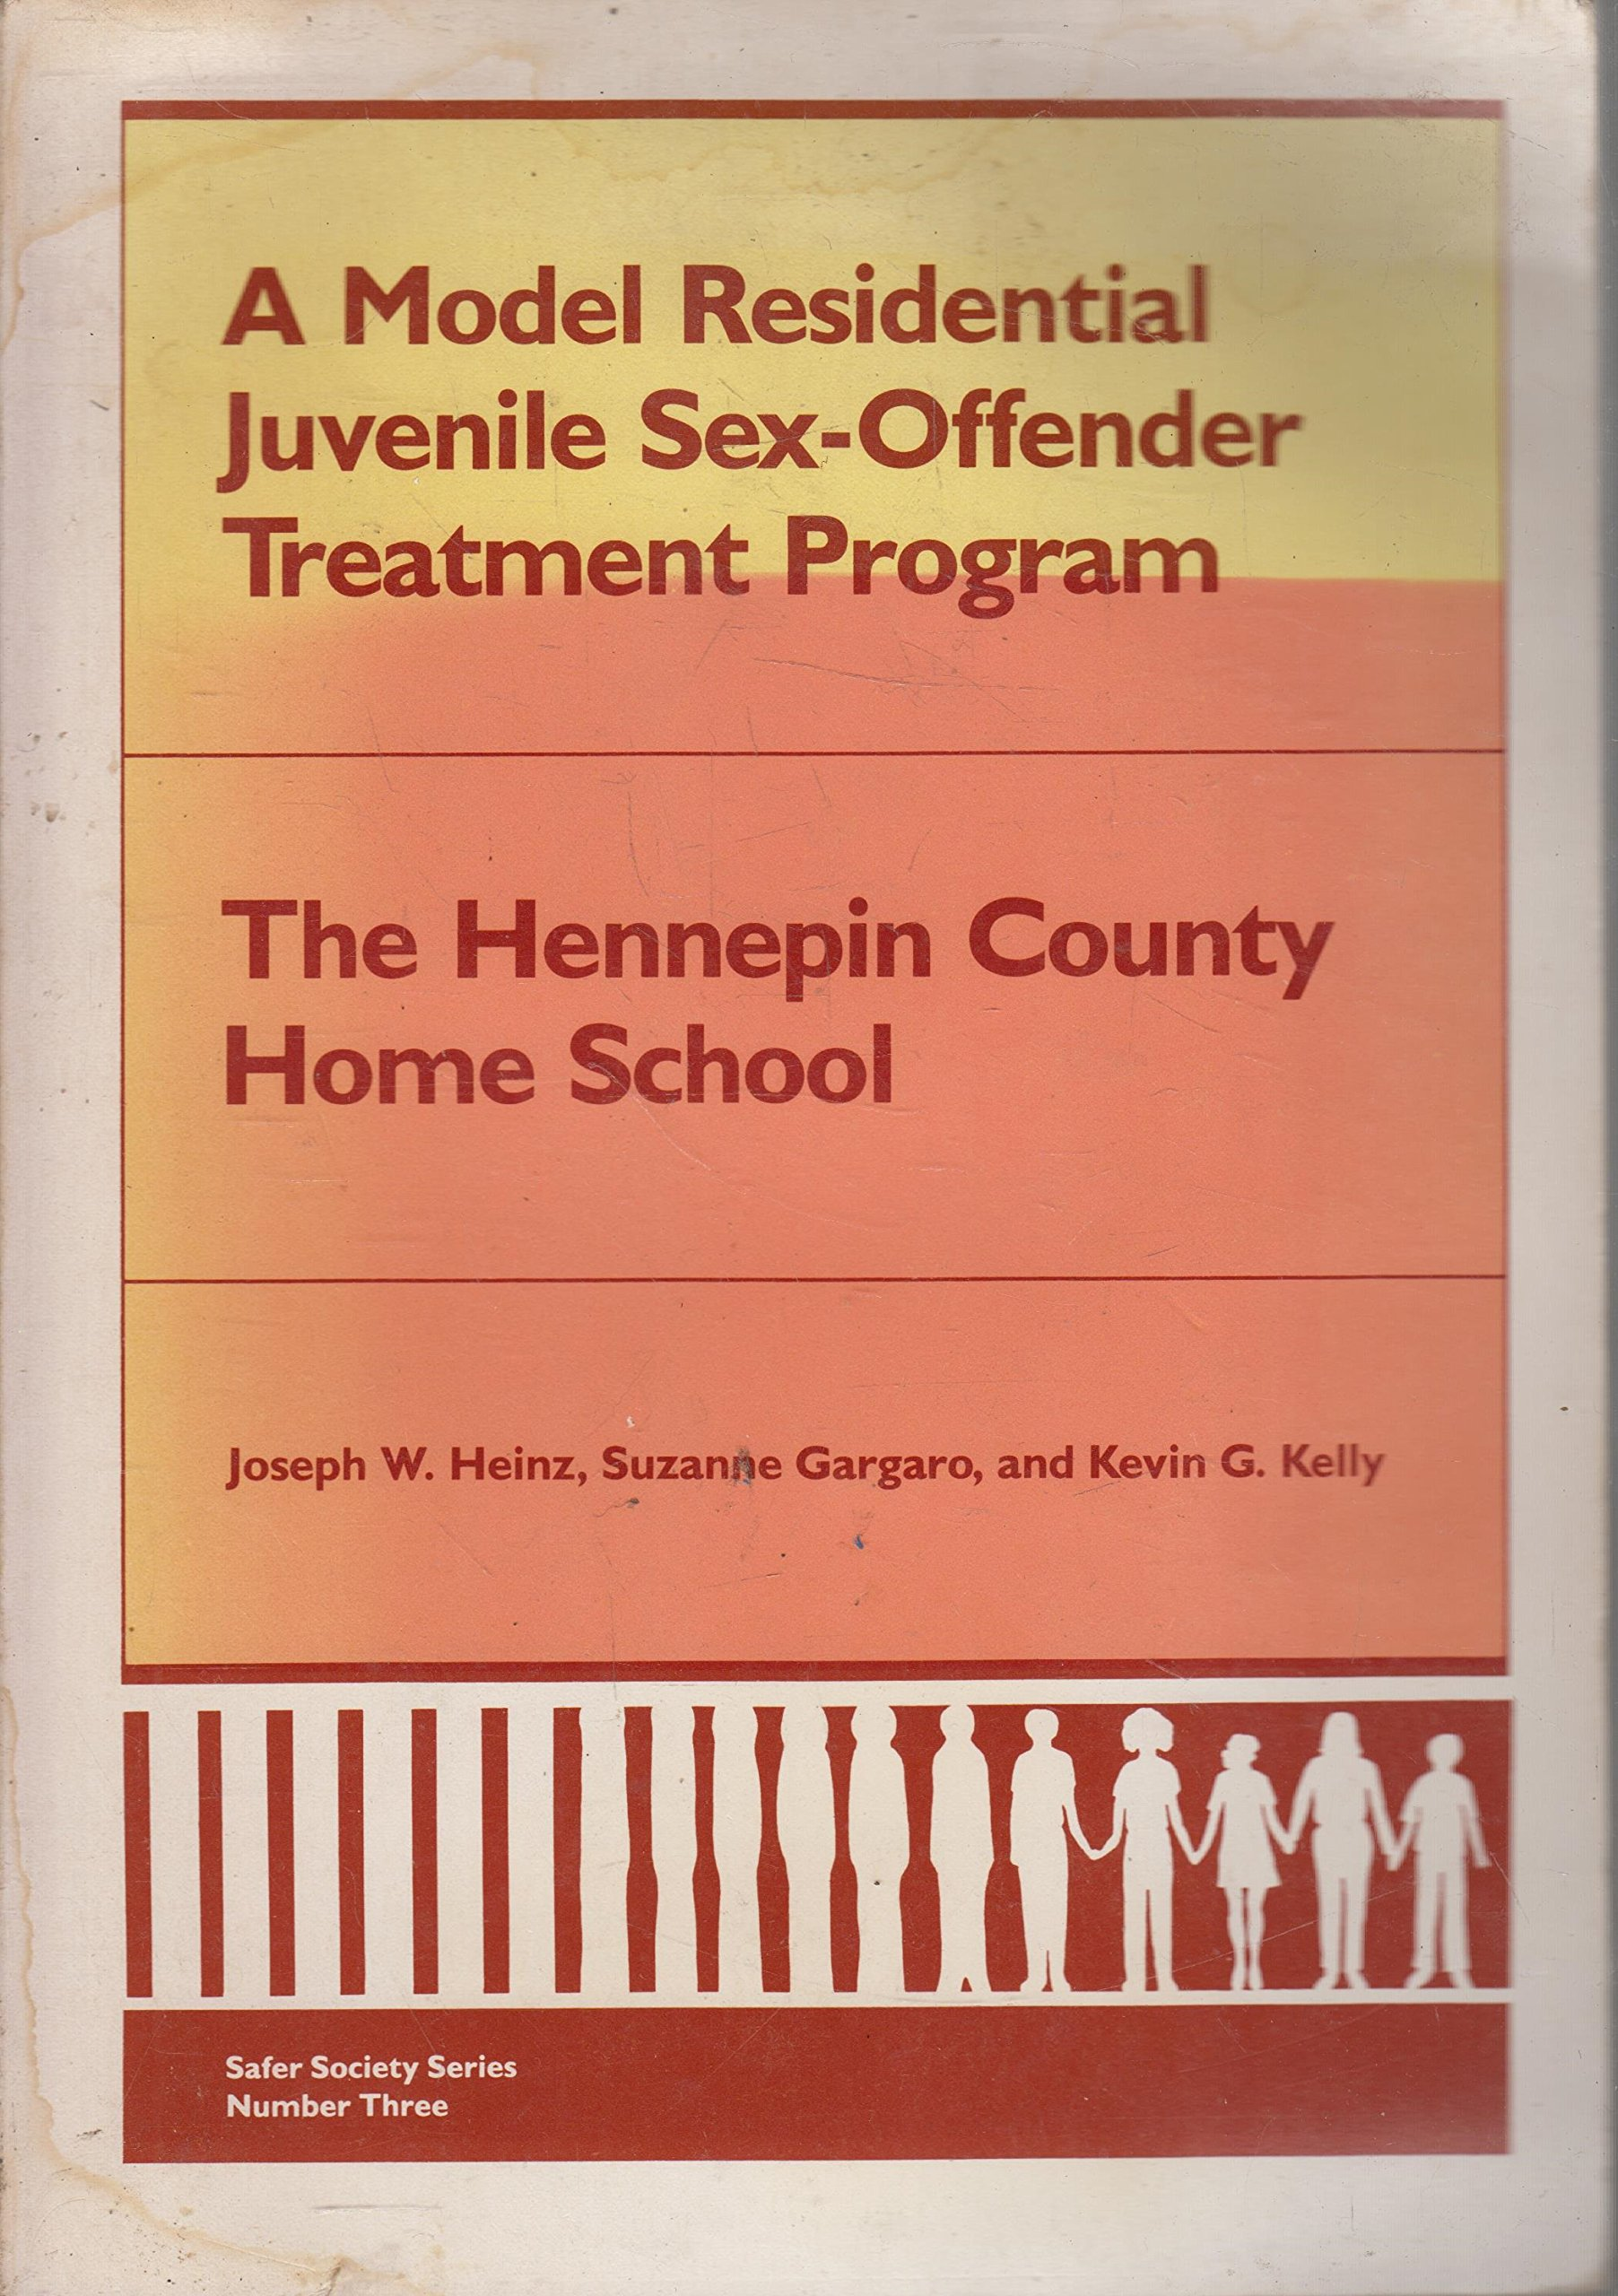 Treatment programs for adolescent sex offenders